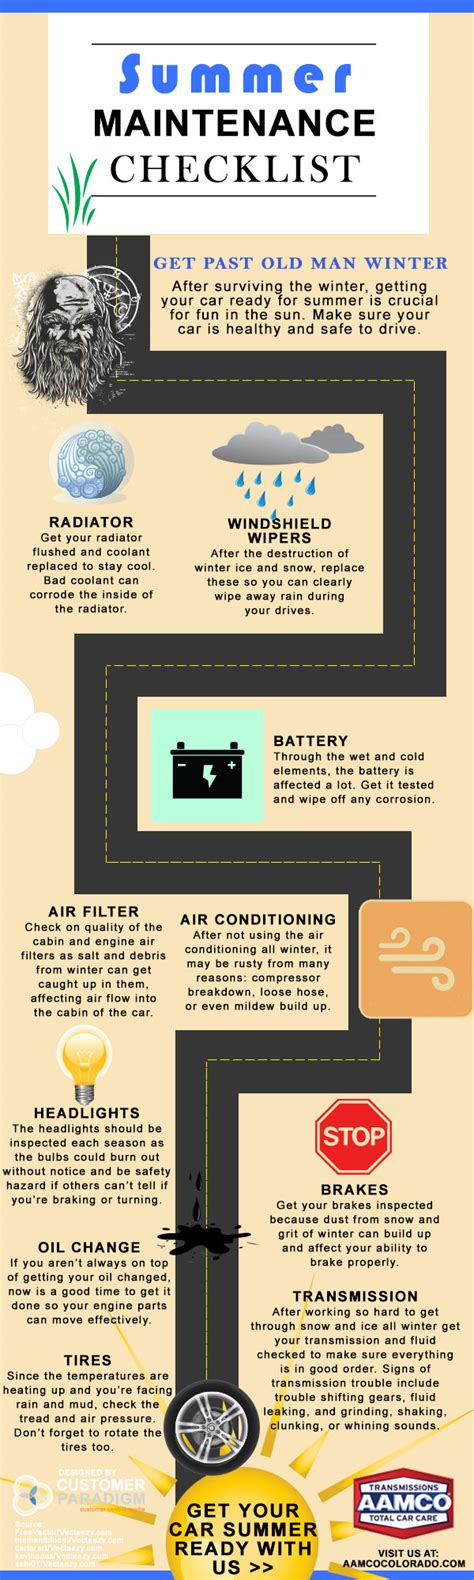 Summer Car Maintenance Checklist   INFOGRAPHIC   AAMCO